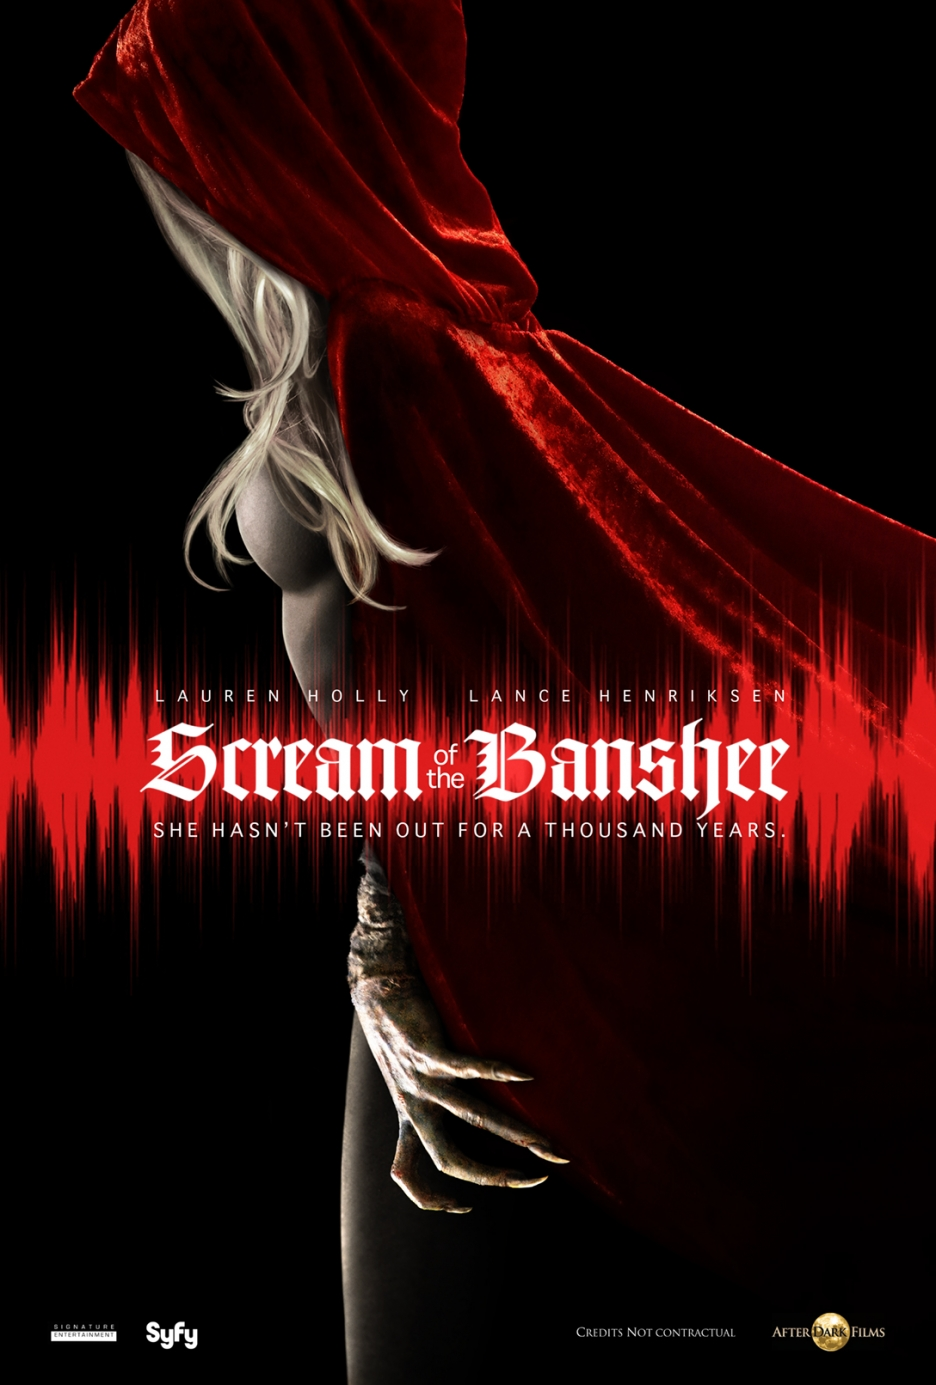 ScreamoftheBanshee.jpg